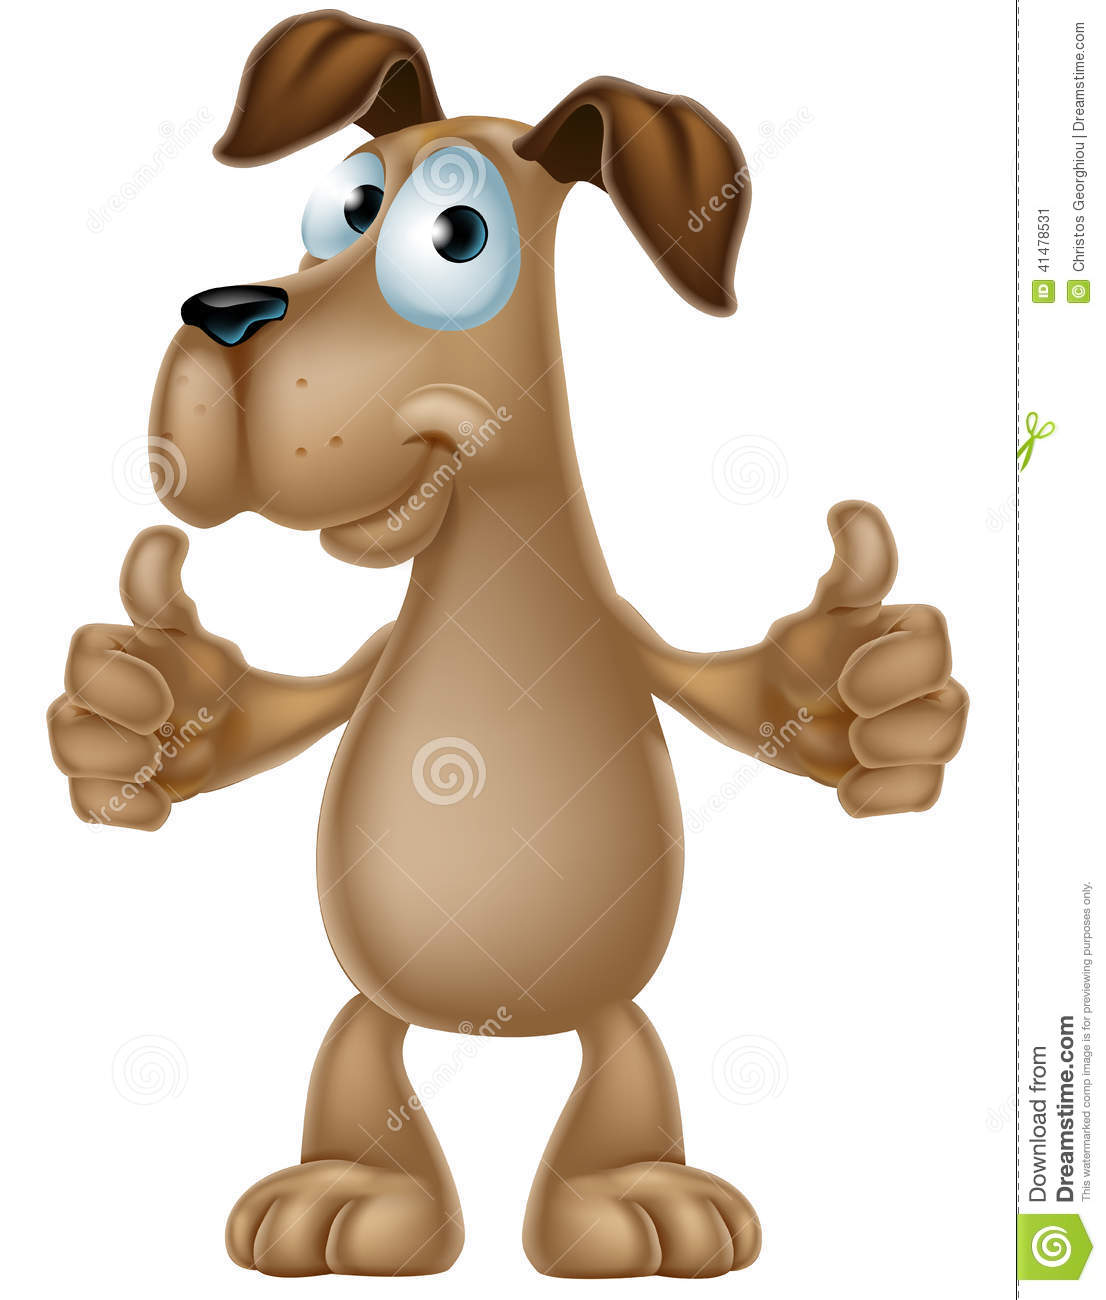 Clipart dog thumbs up royalty free library Clipart dog thumbs up - ClipartFest royalty free library